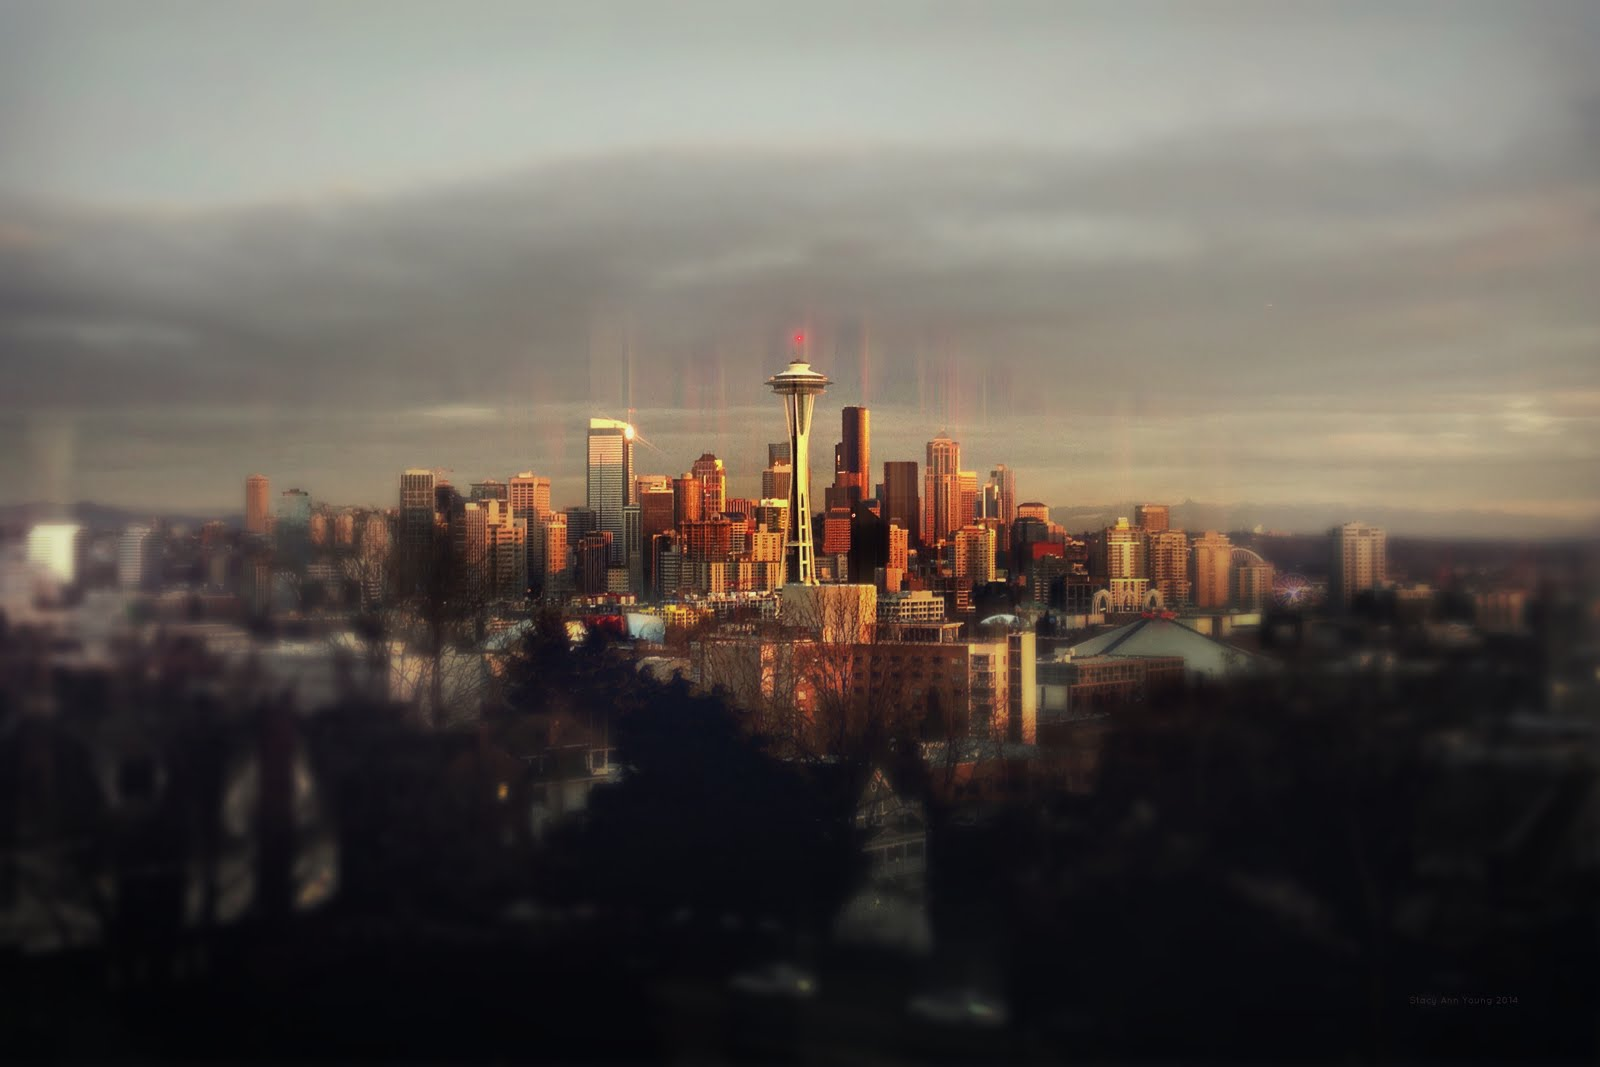 Seattle on Edge of Dusk